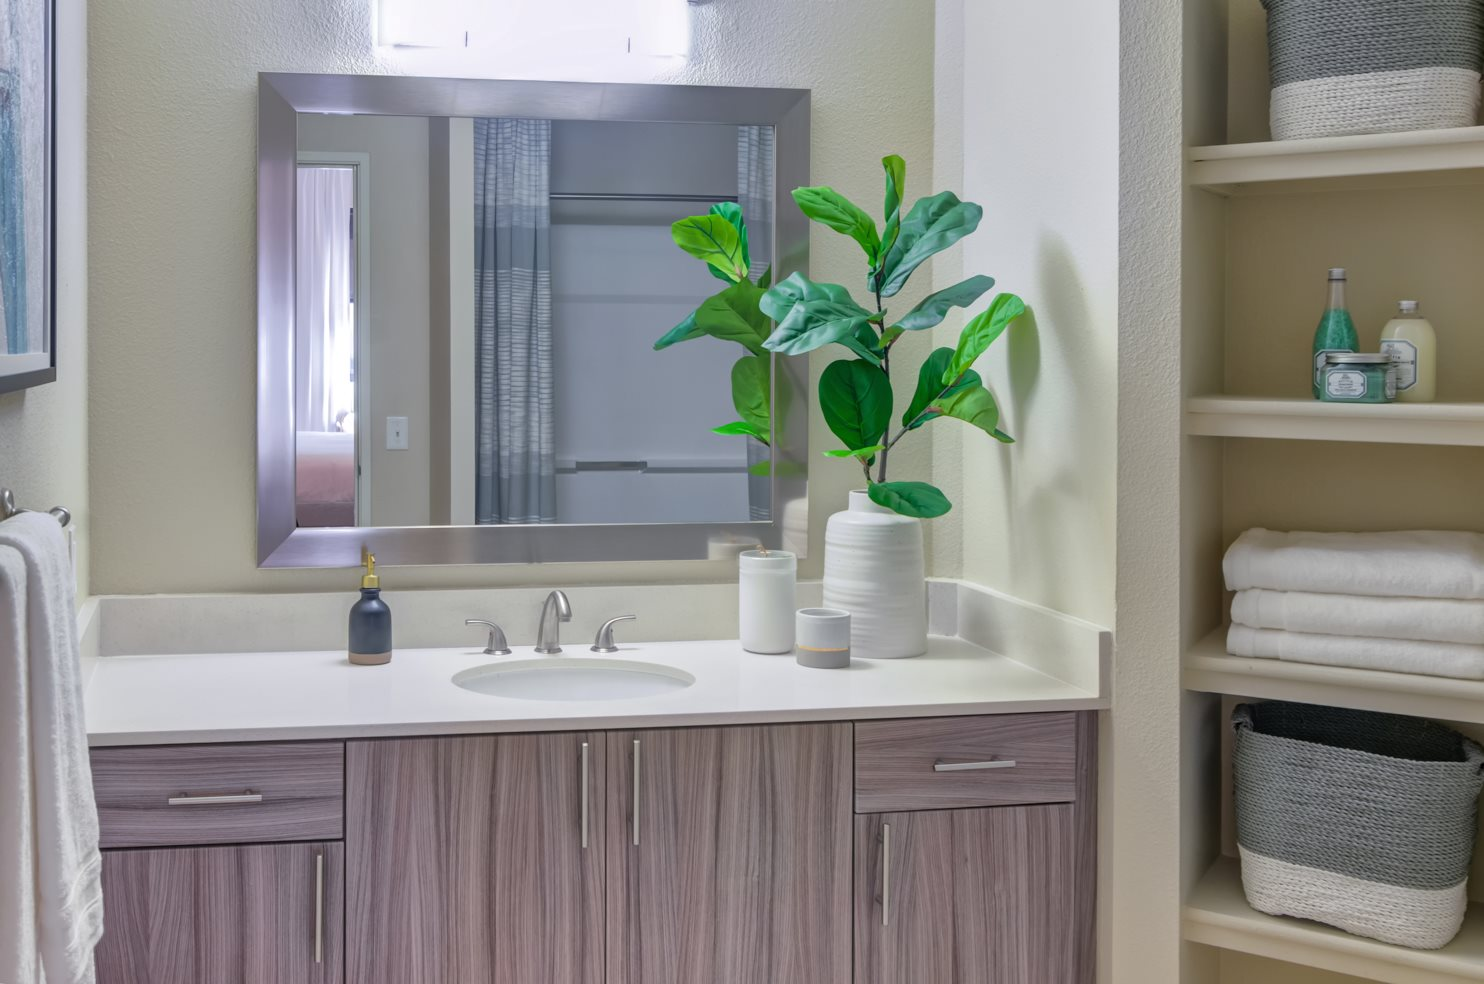 Apartments Downtown Portland - Southpark Square Bathroom with Storage Space